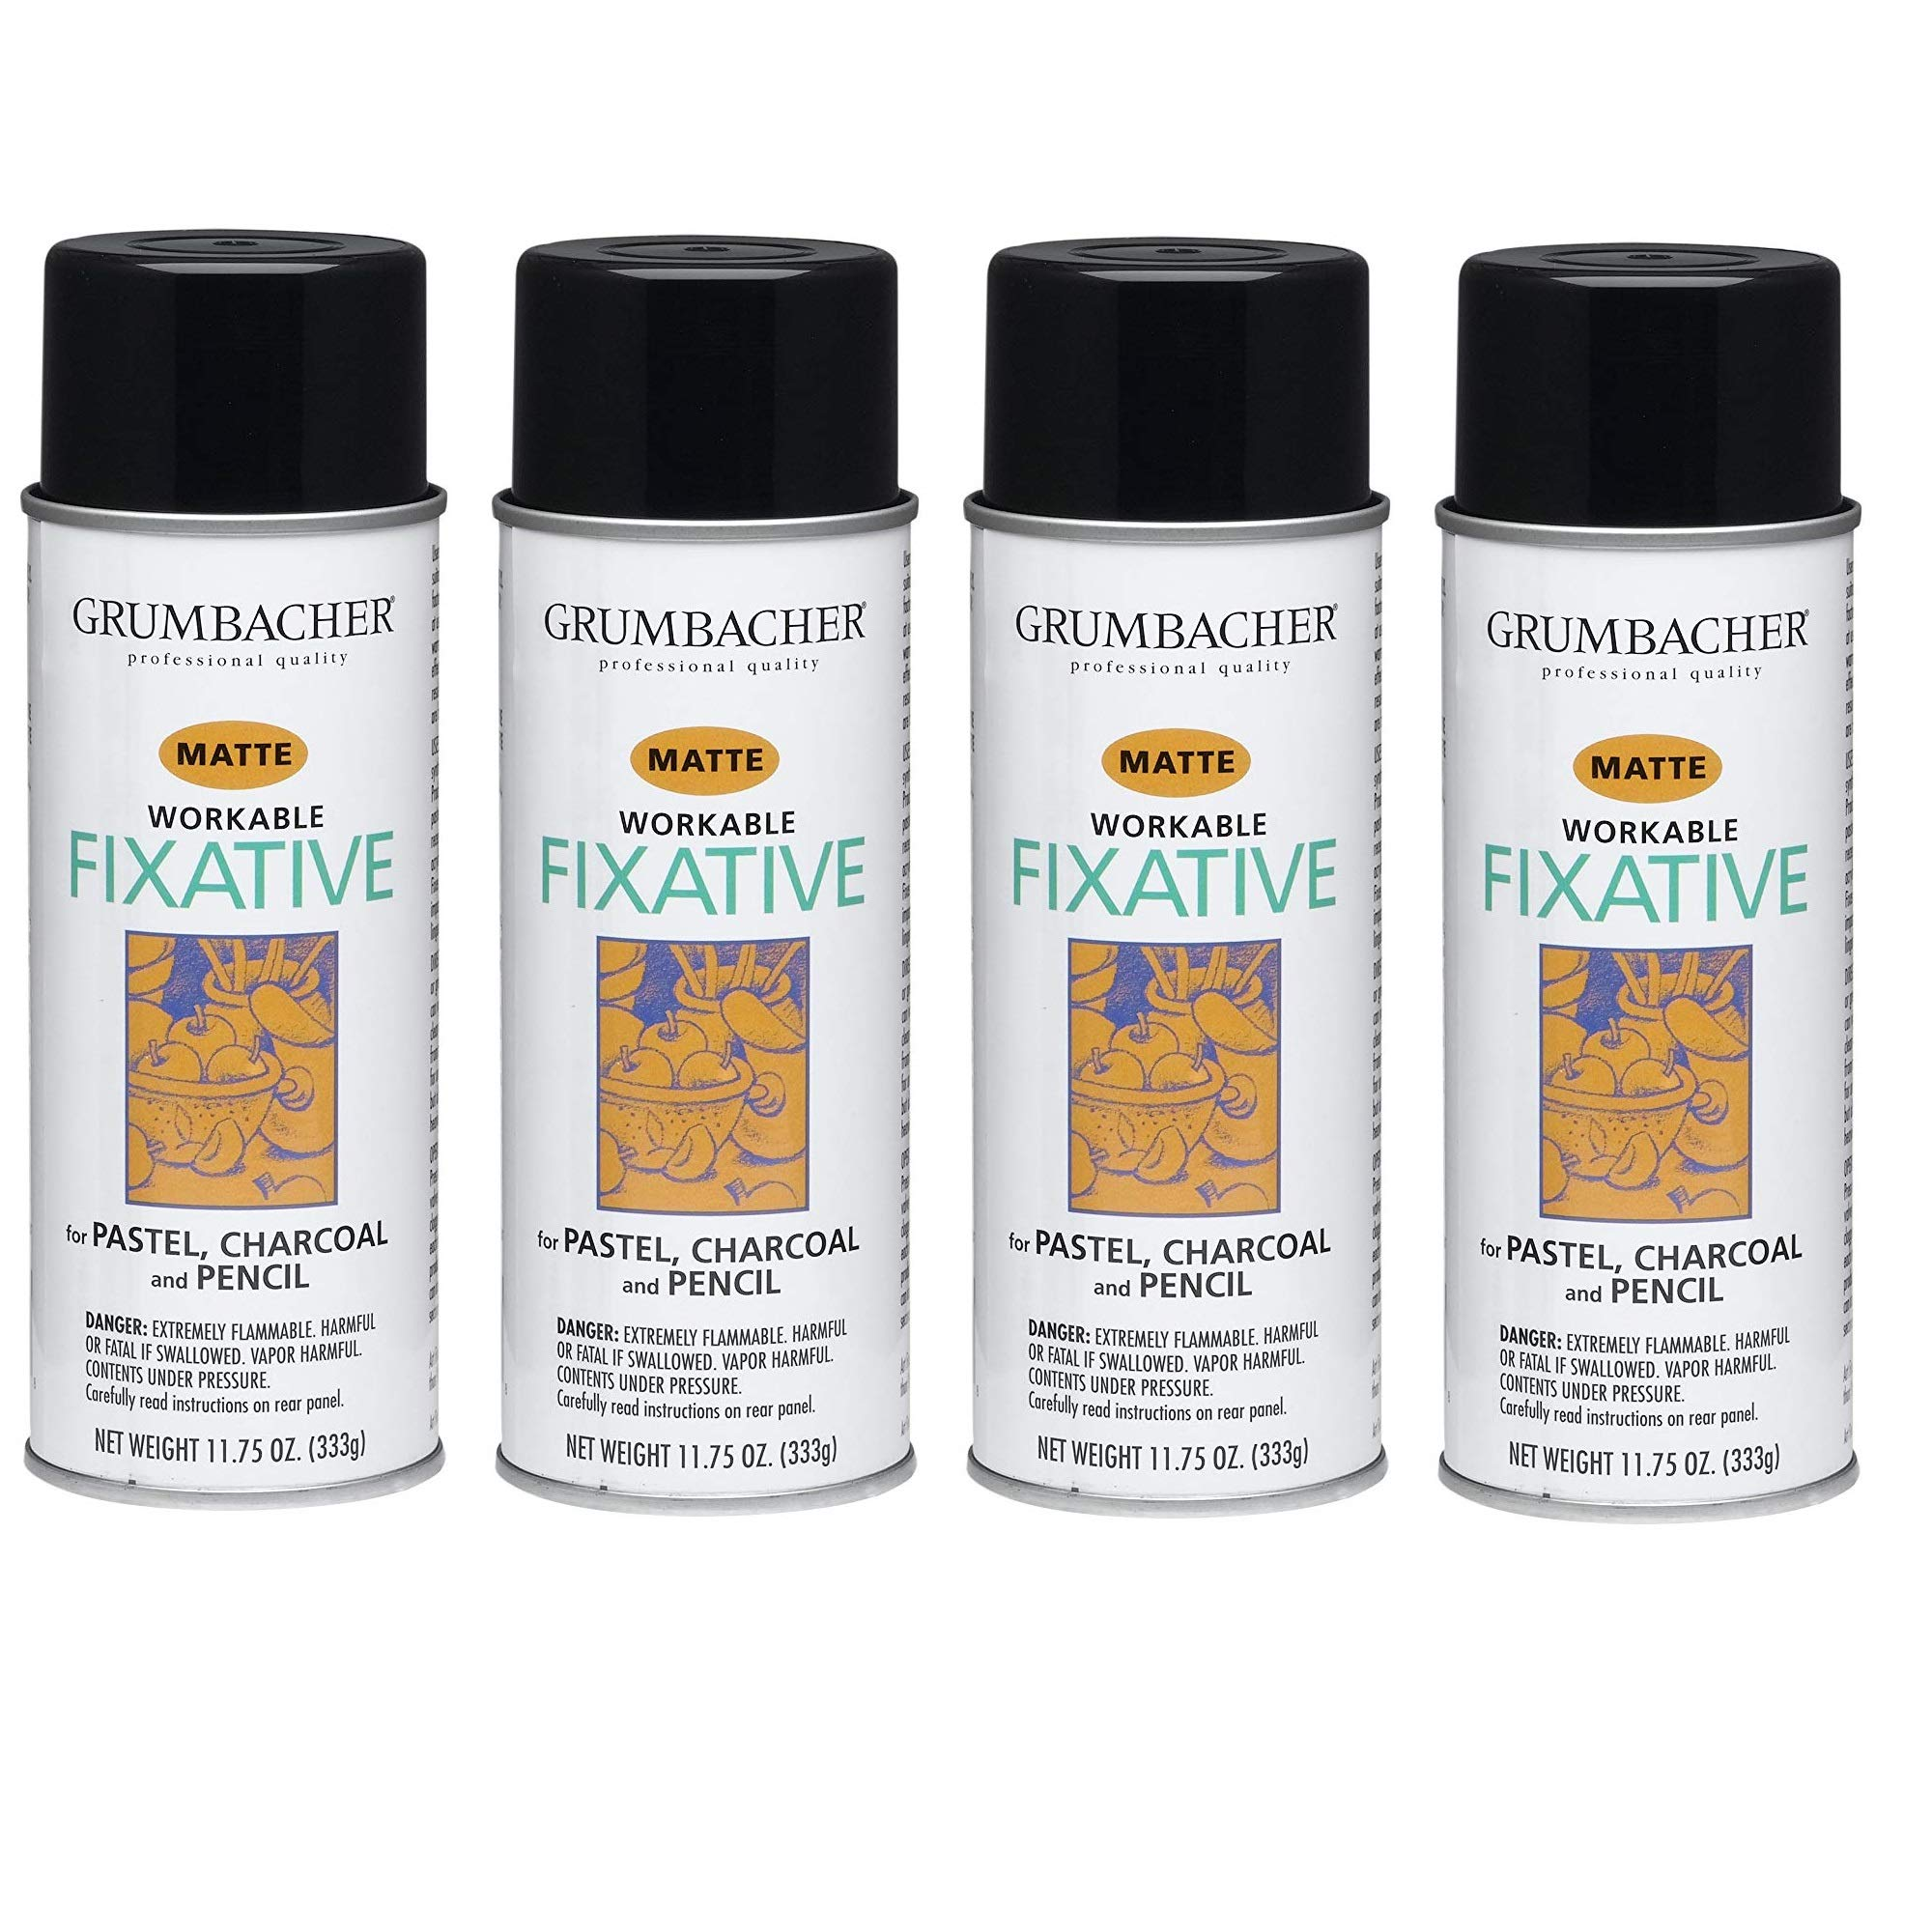 GRUMBACHER 546 11-3/4-Ounce Workable Fixative Spray, 11-3/4-Ounce Can, 4 Pack by GRUMBACHER